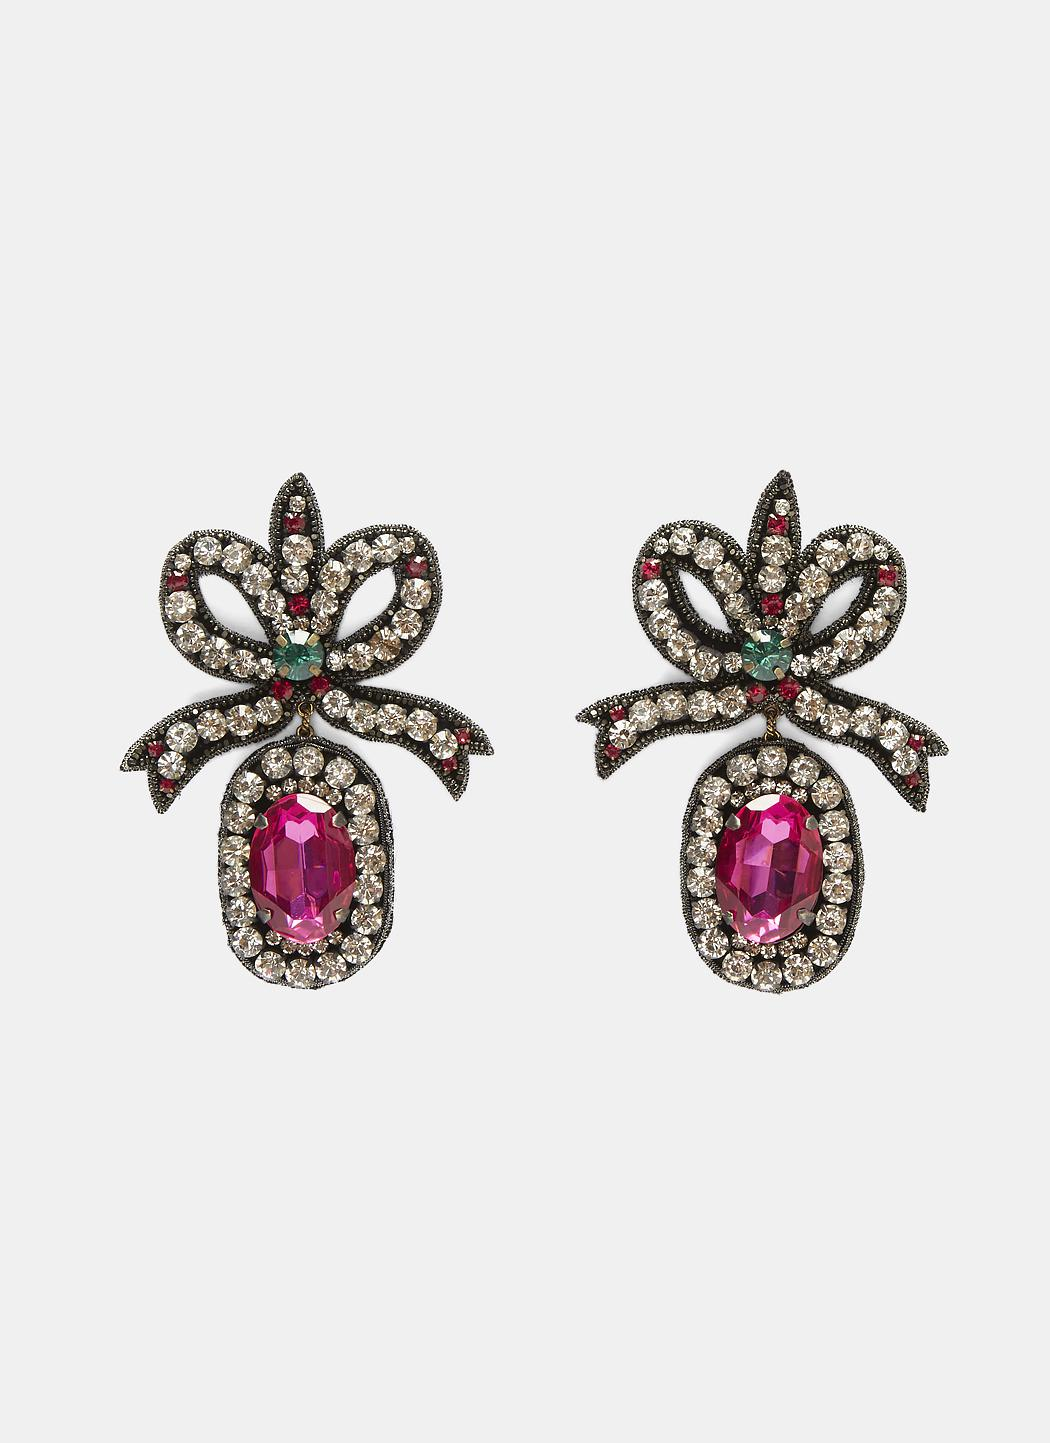 Gucci Women S Crystal Embroidered Bow Earrings In Black And Pink